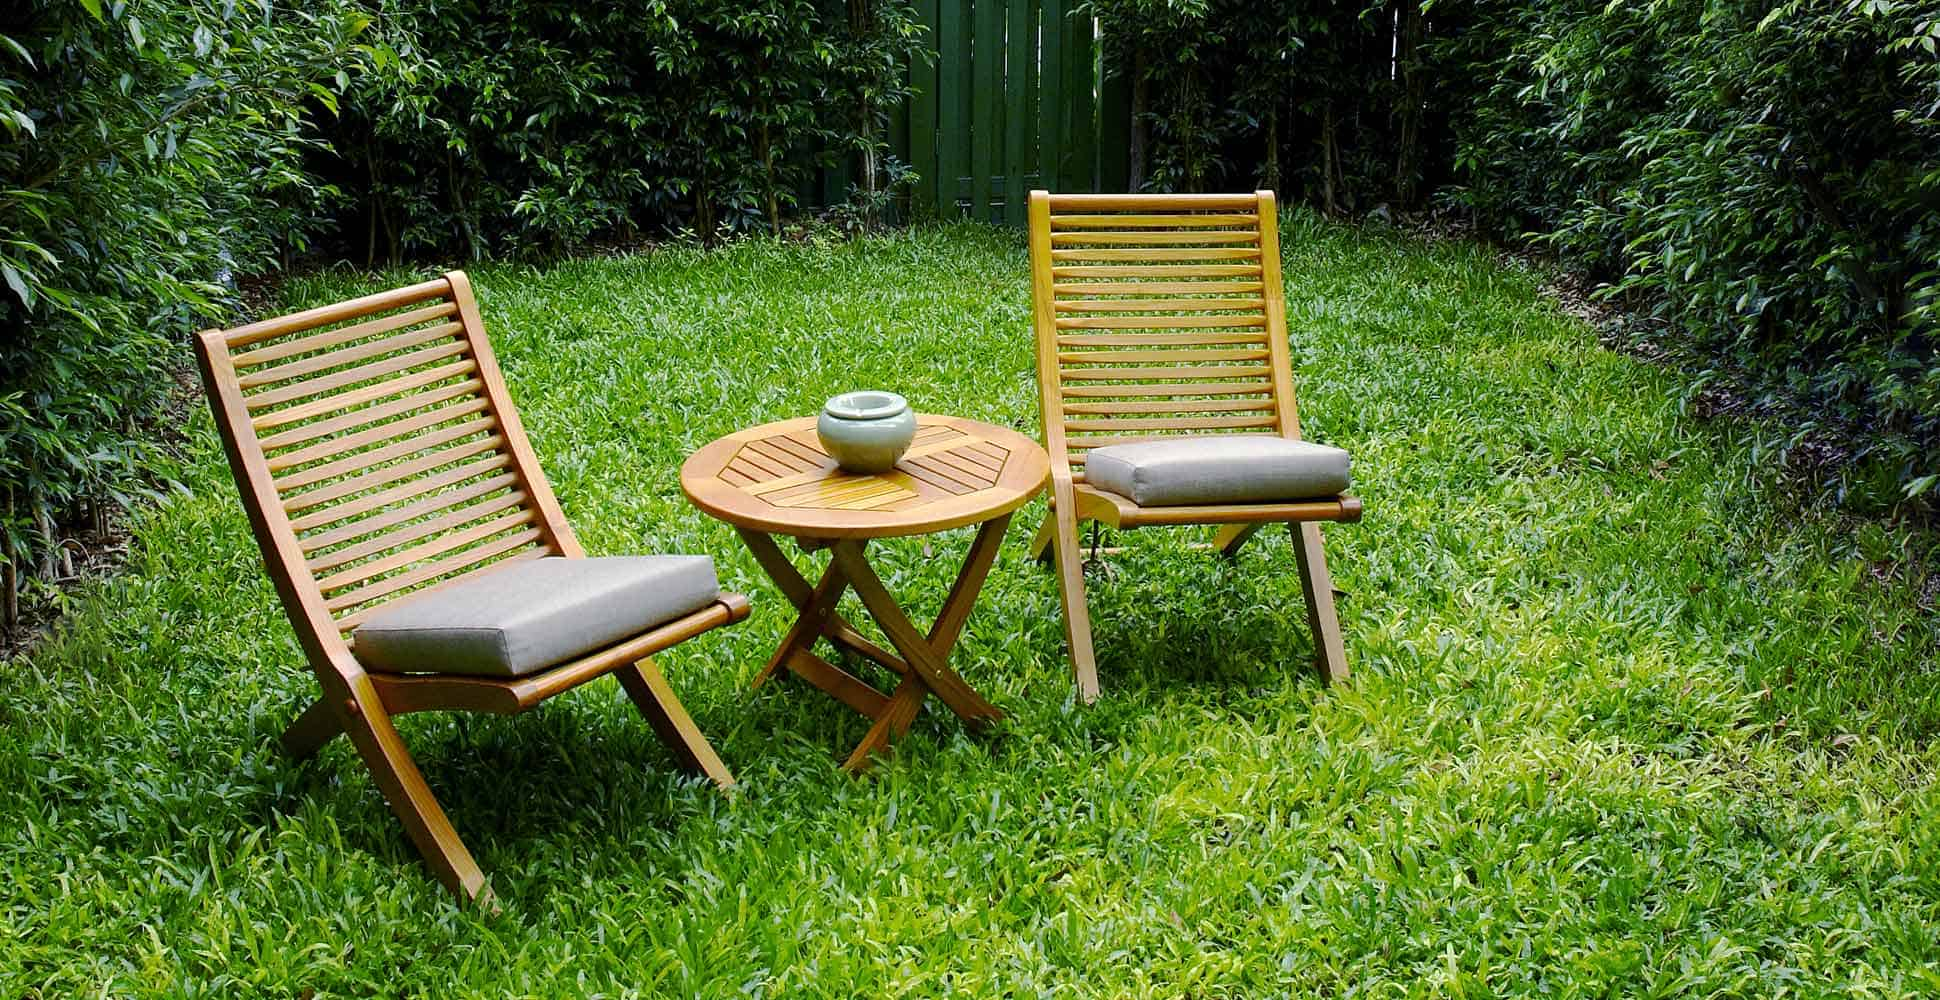 best-outdoor-chair-cushions-for-garden-furniture